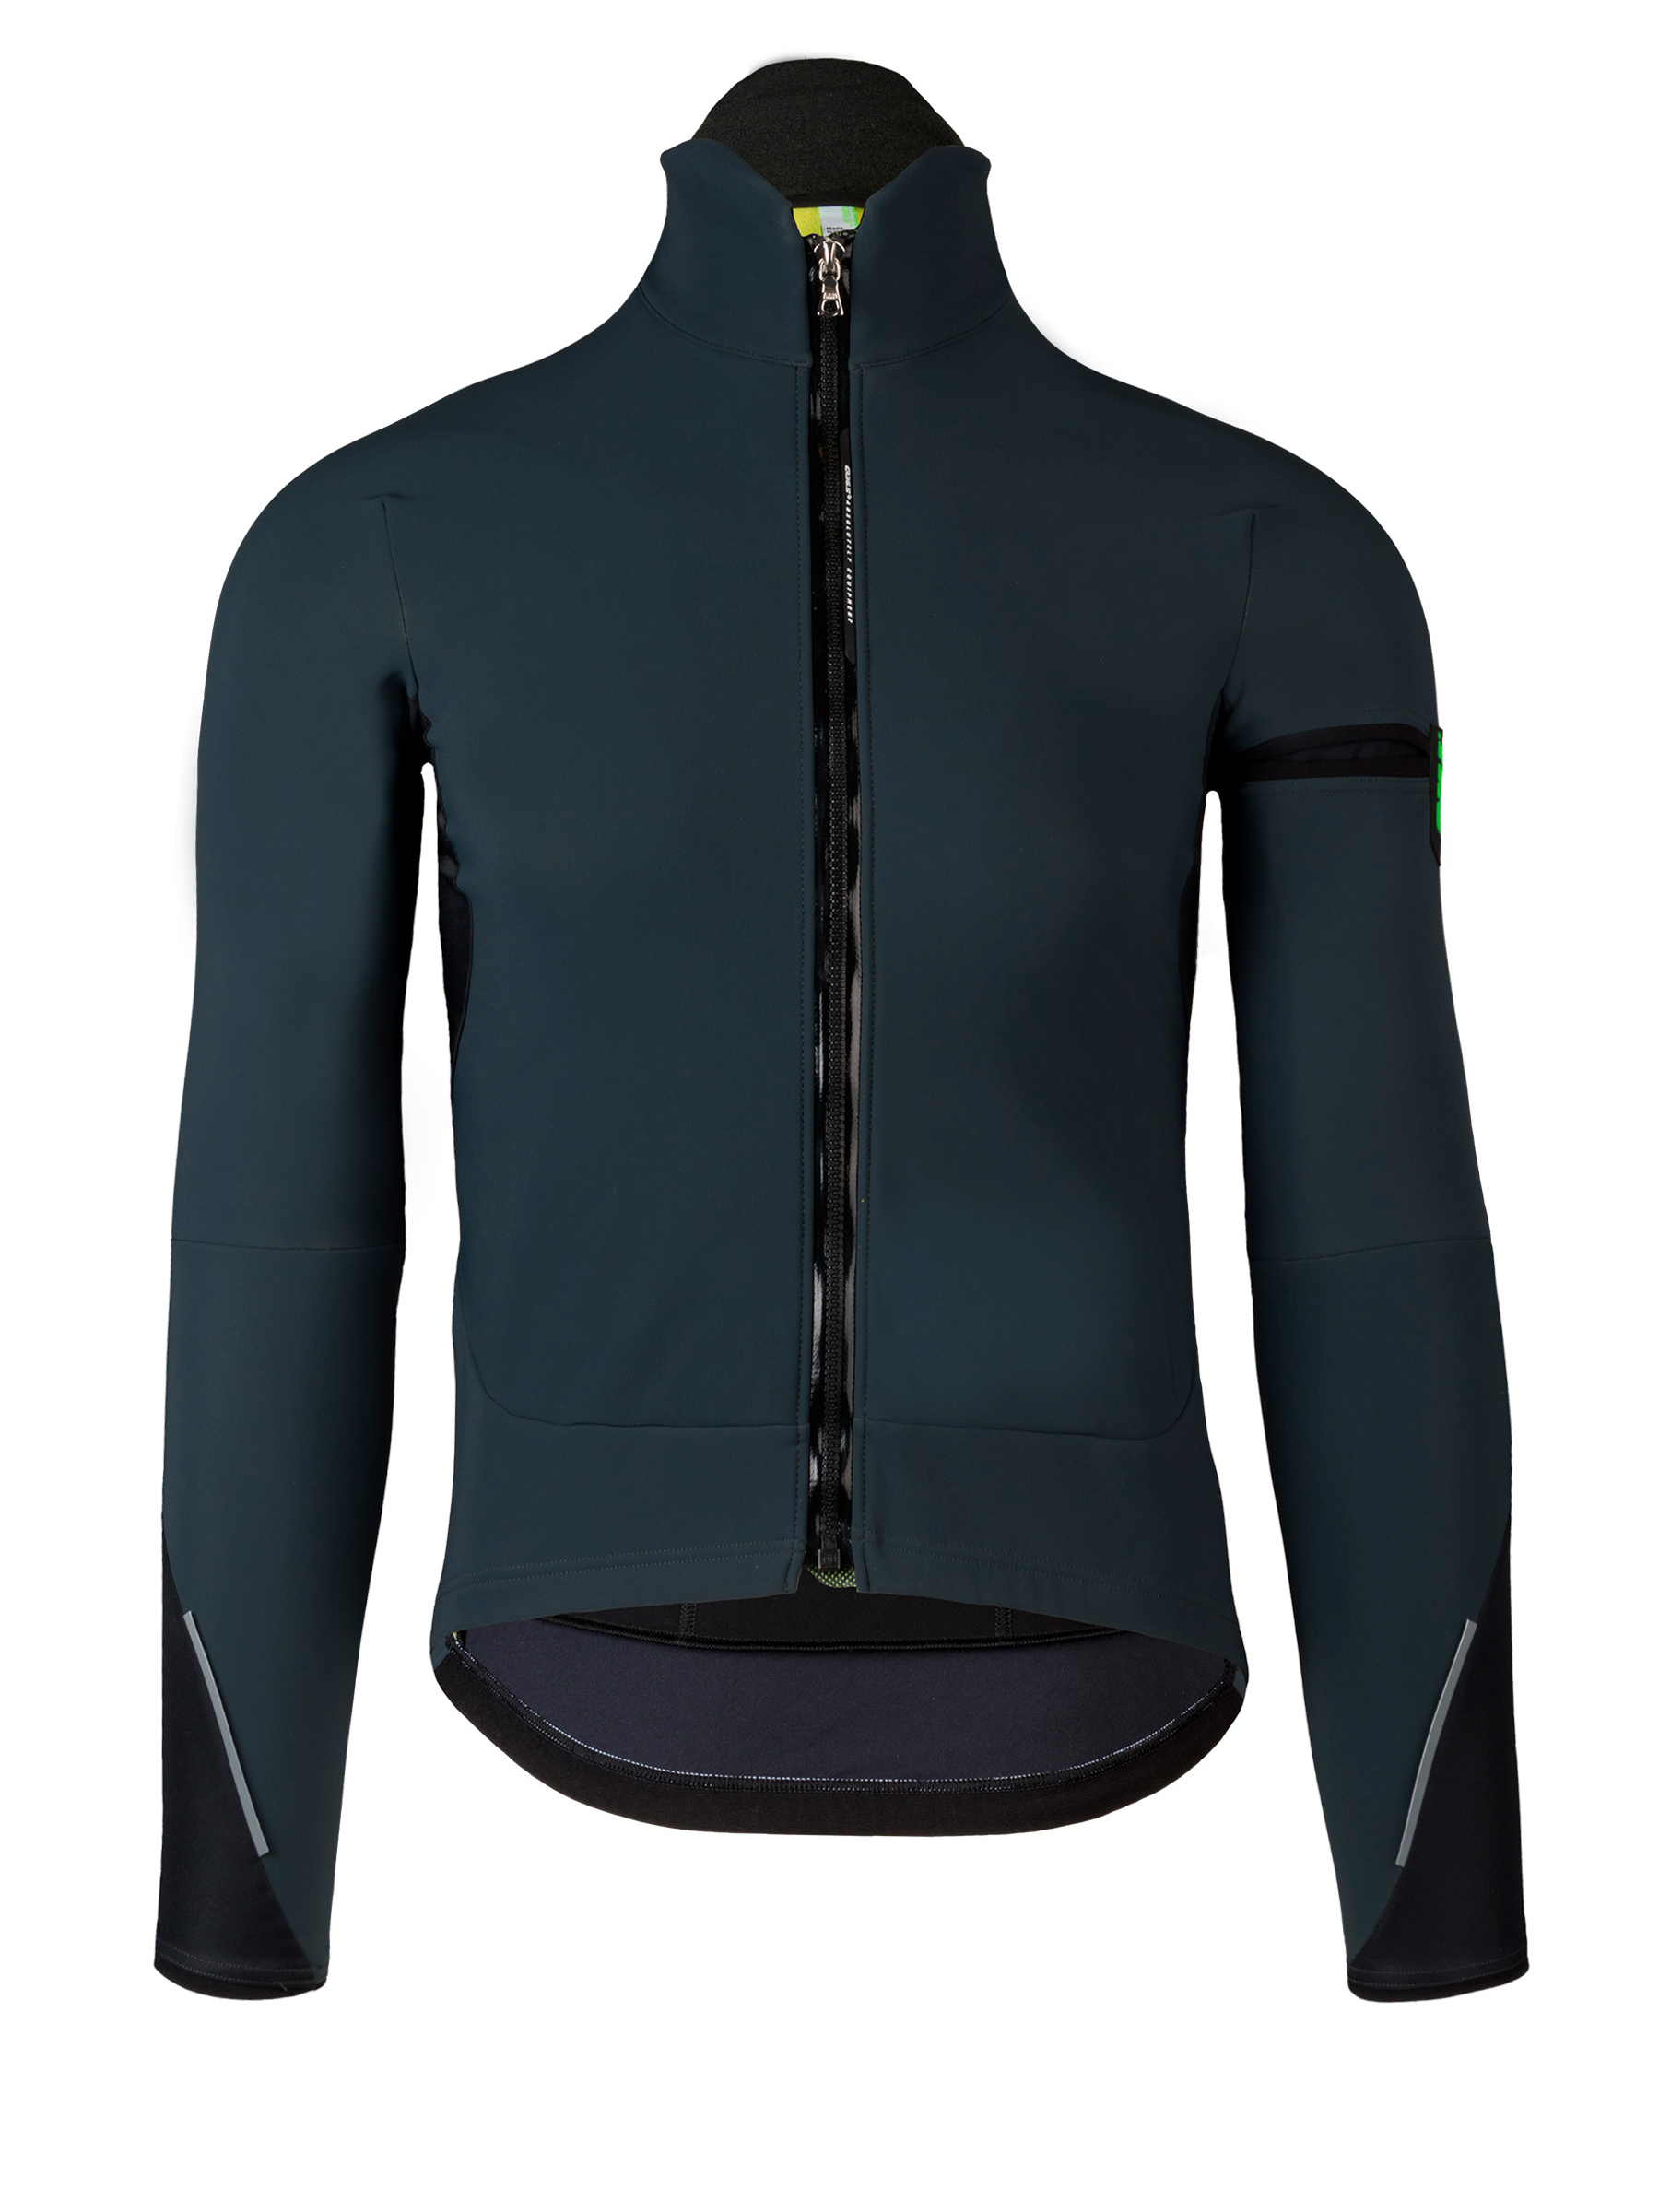 Mens cycling jacket Termica Jacket Q36.5 titanium